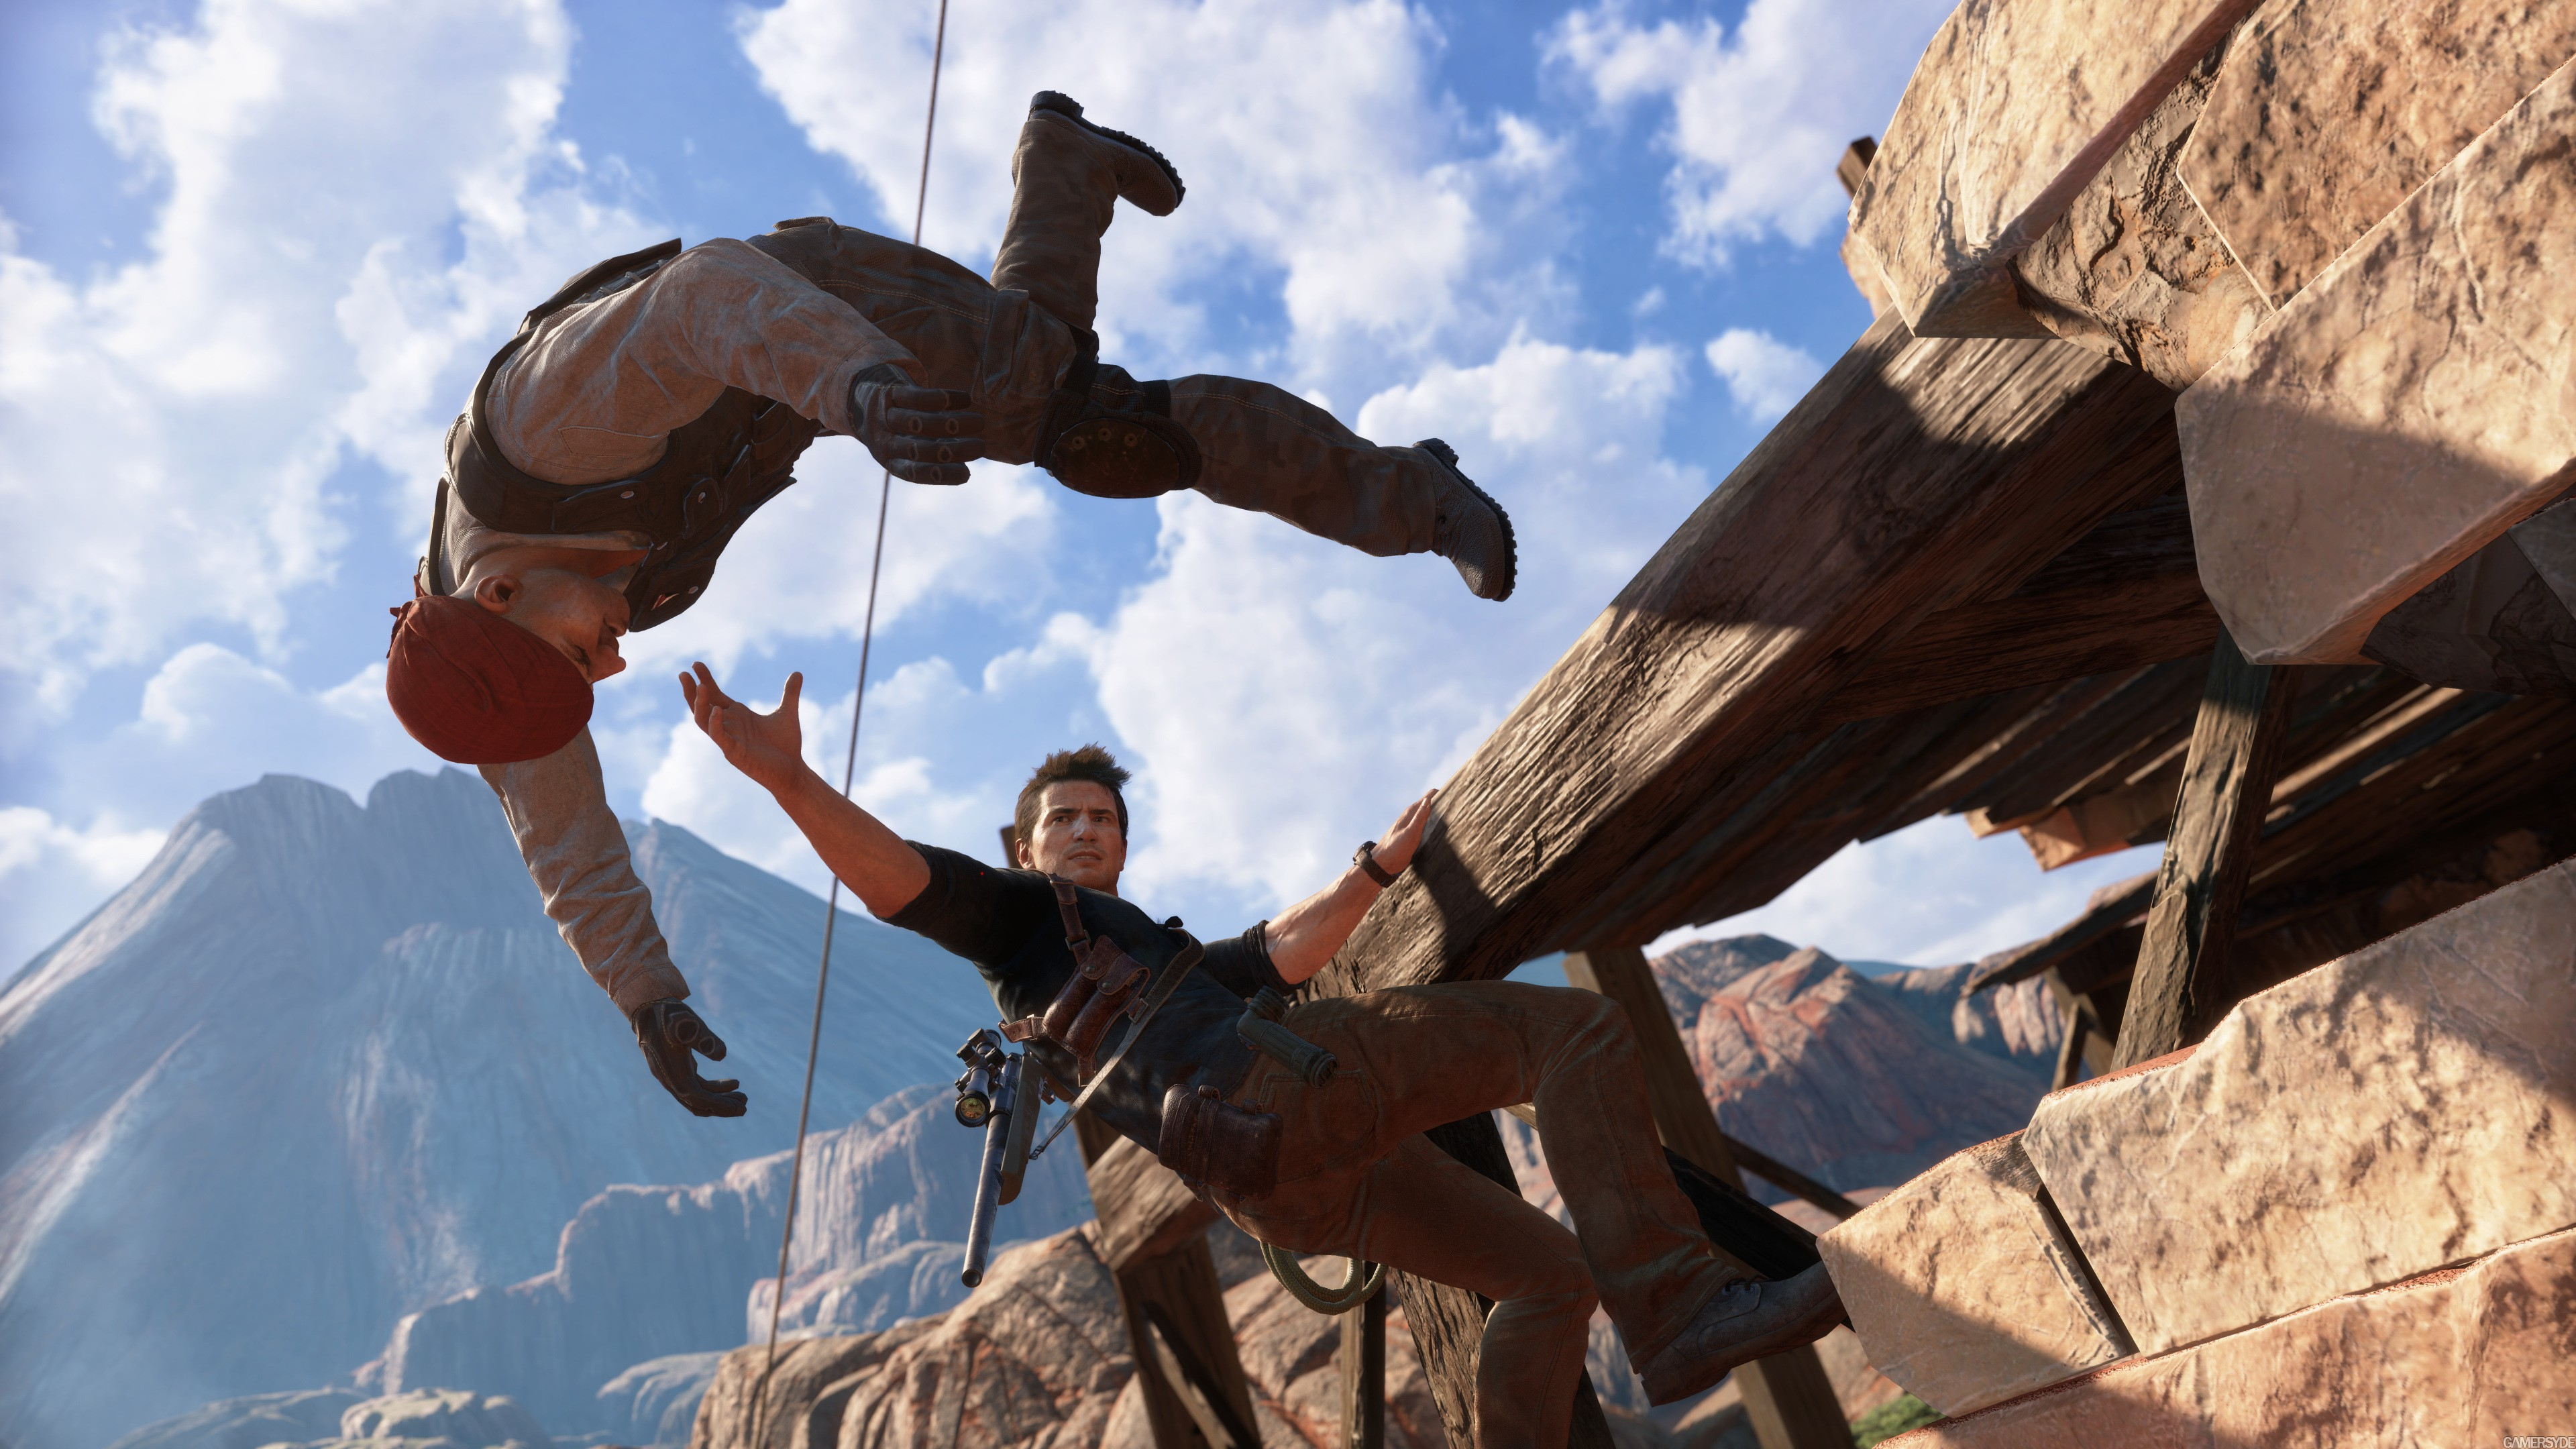 Wallpaper uncharted 4 a thief 39 s end nathan drake best - Uncharted 4 wallpaper ps4 ...